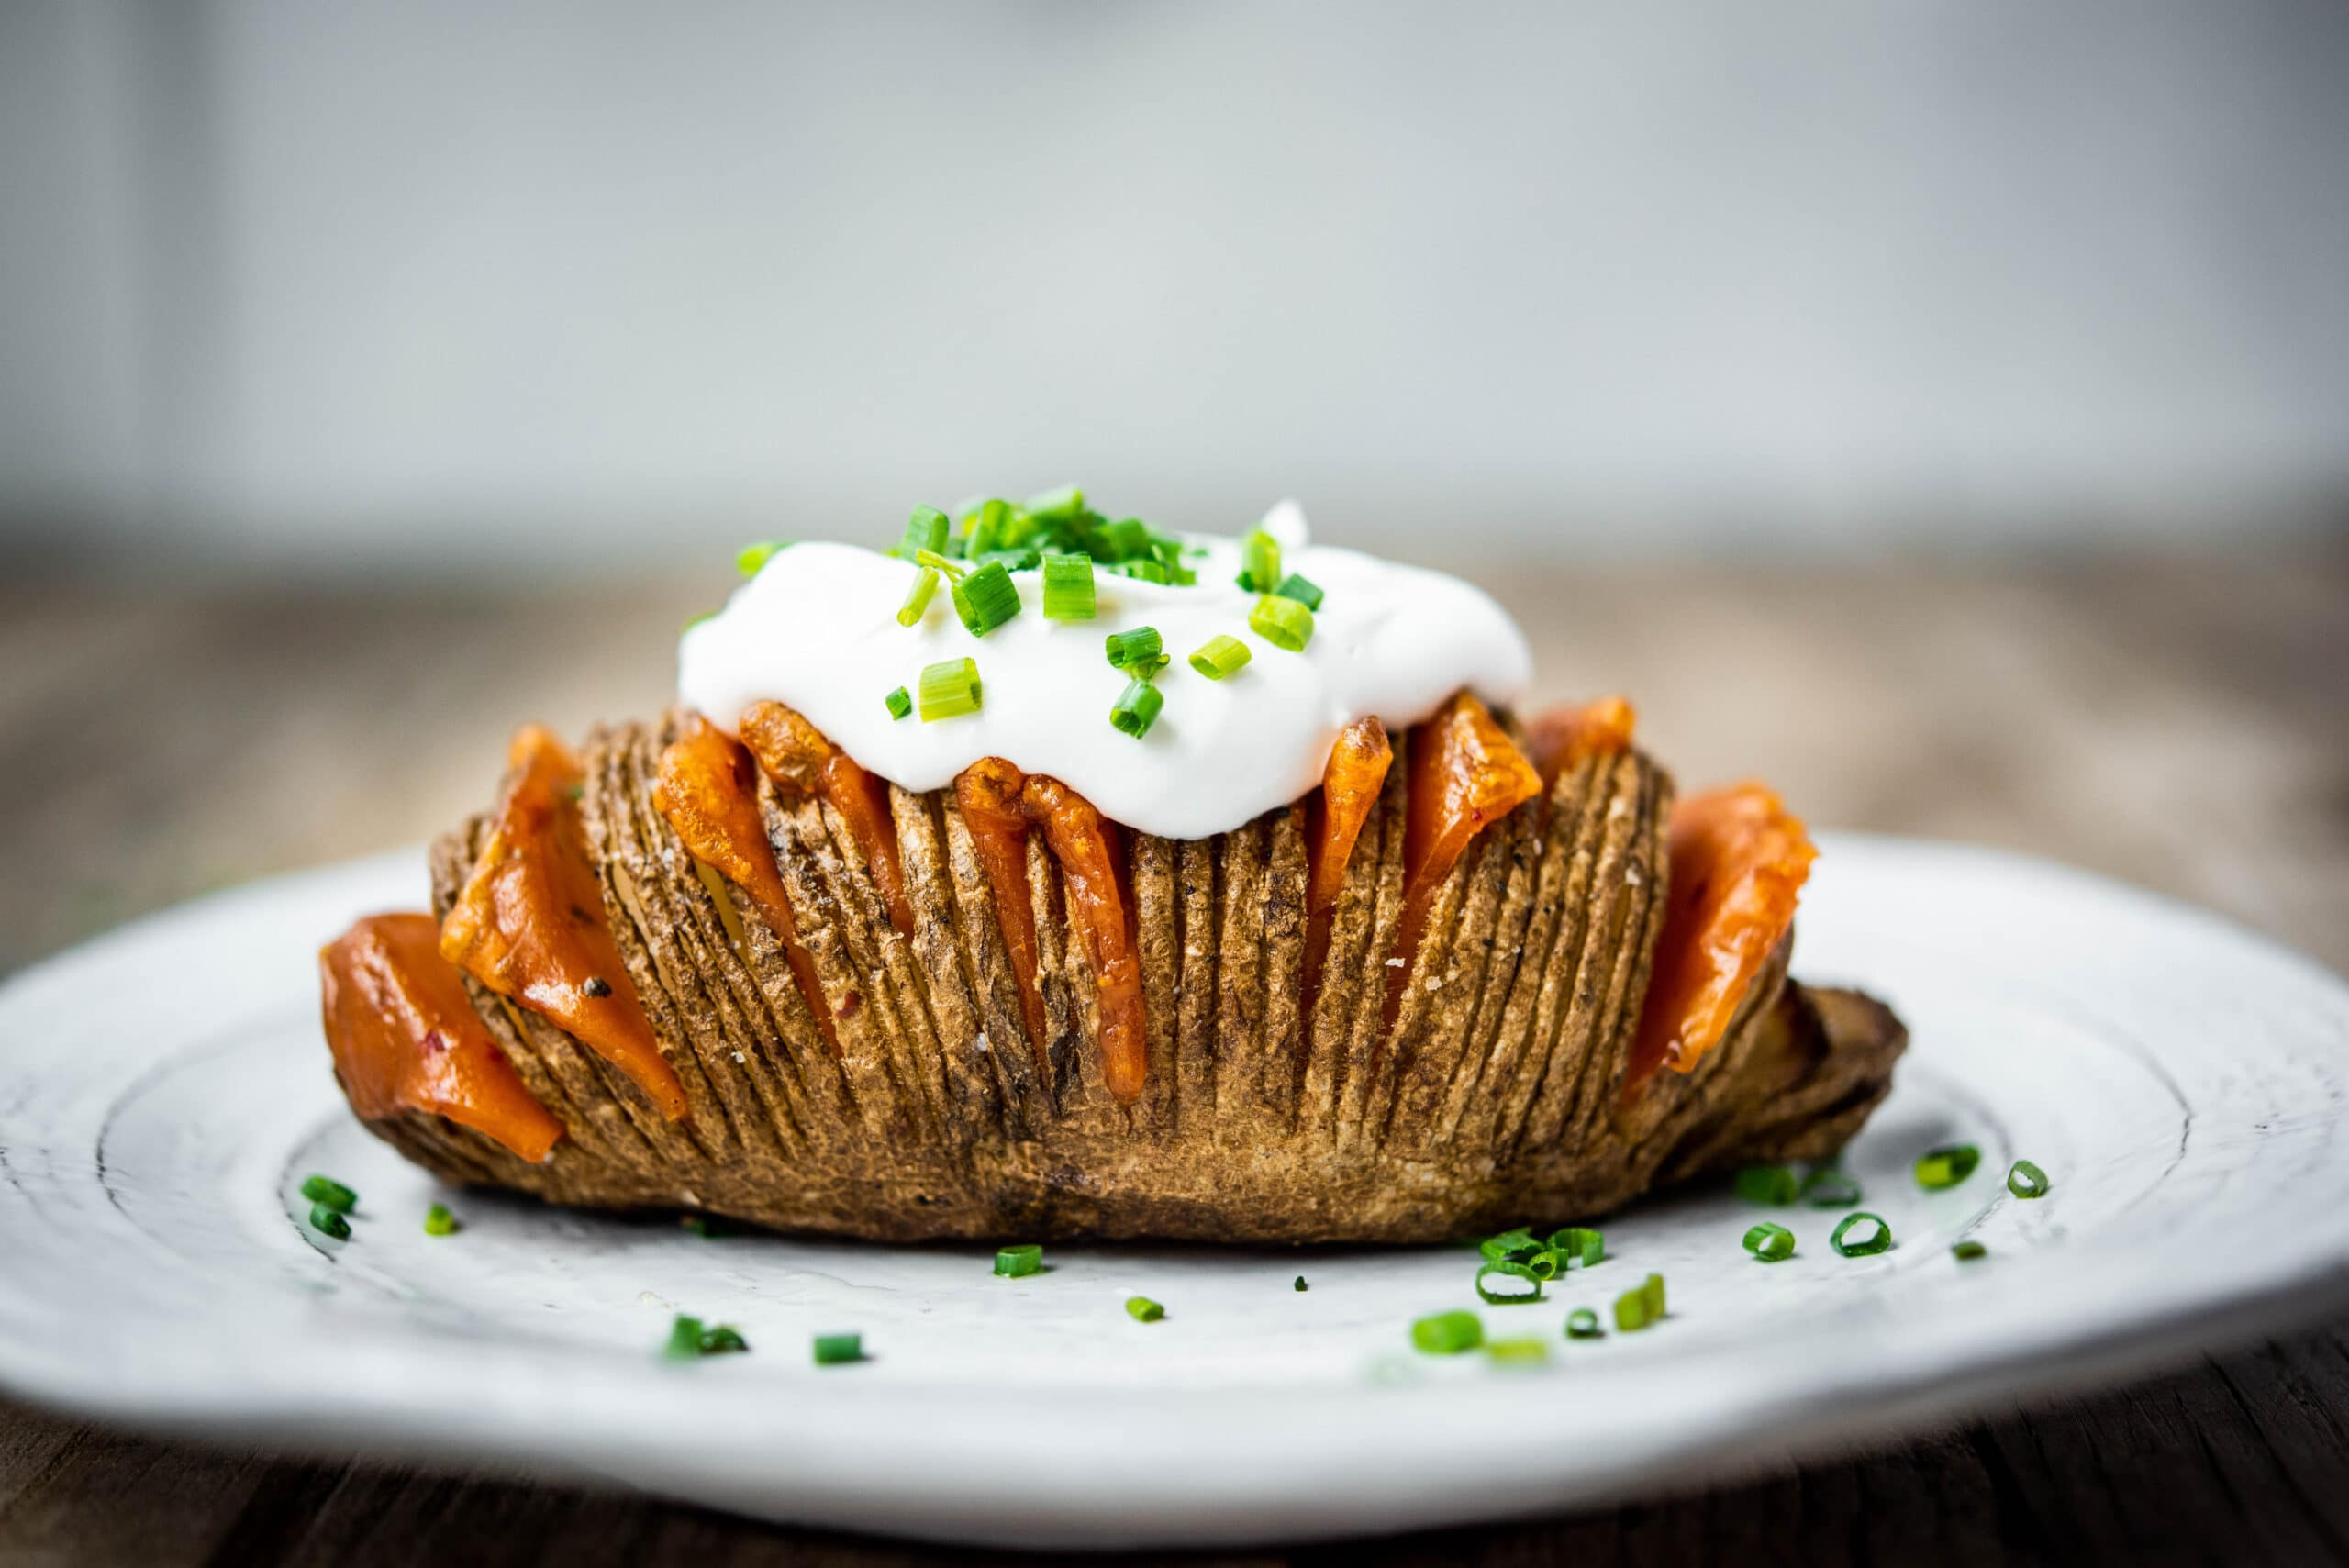 side view of cheesy hasselback potato on plate